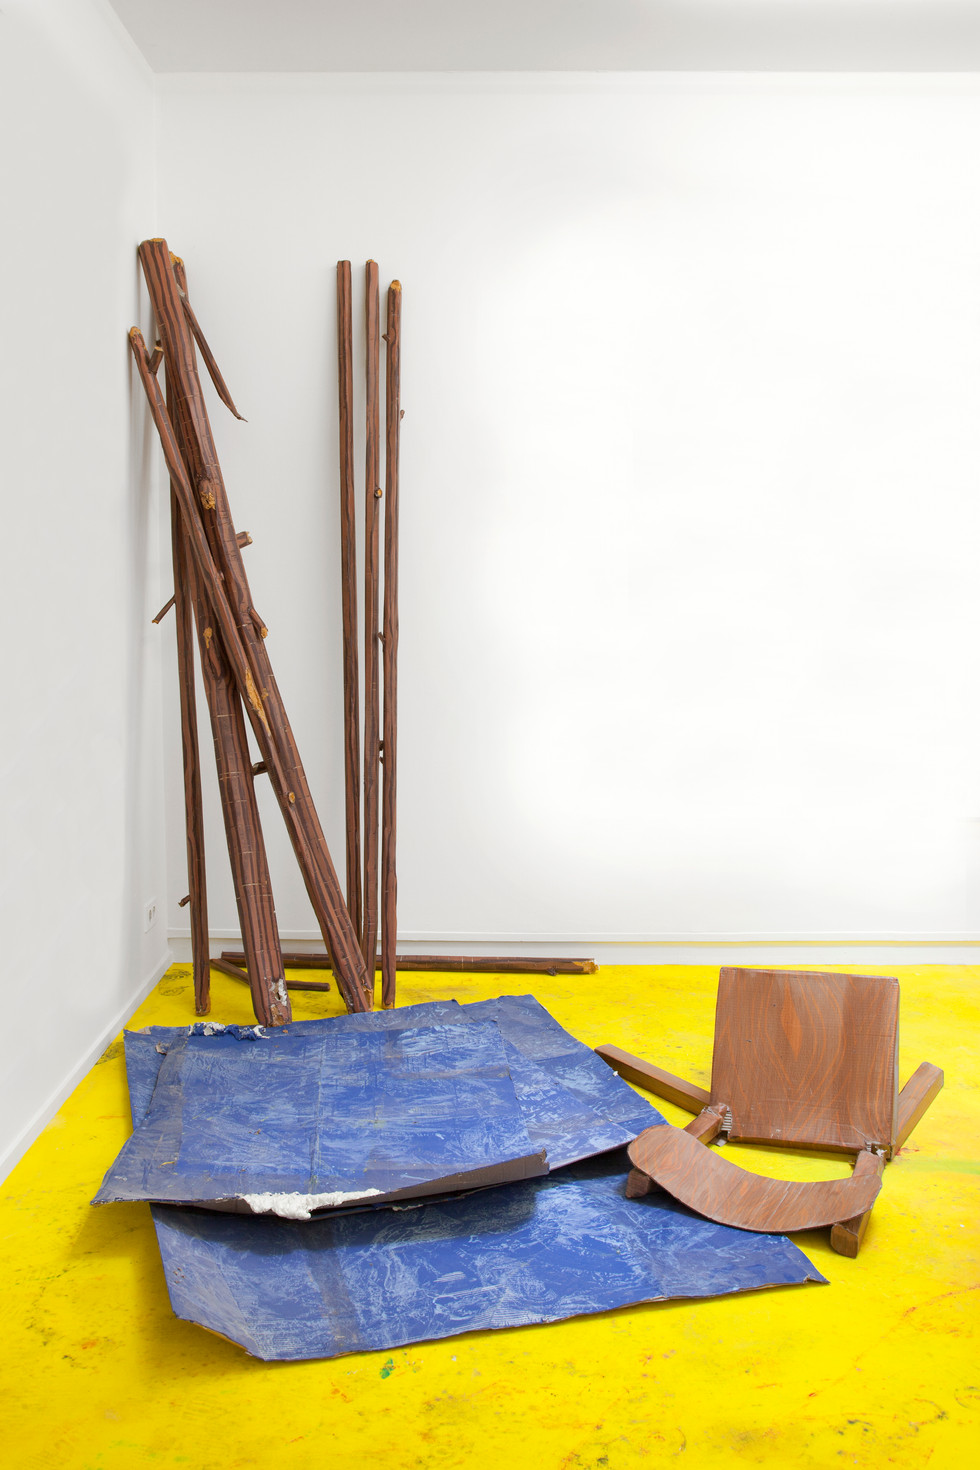 RINUS VAN DE VELDE,  Prop, Raft, Wooden Sticks, Sheets of Water & Broken Chair, 2017